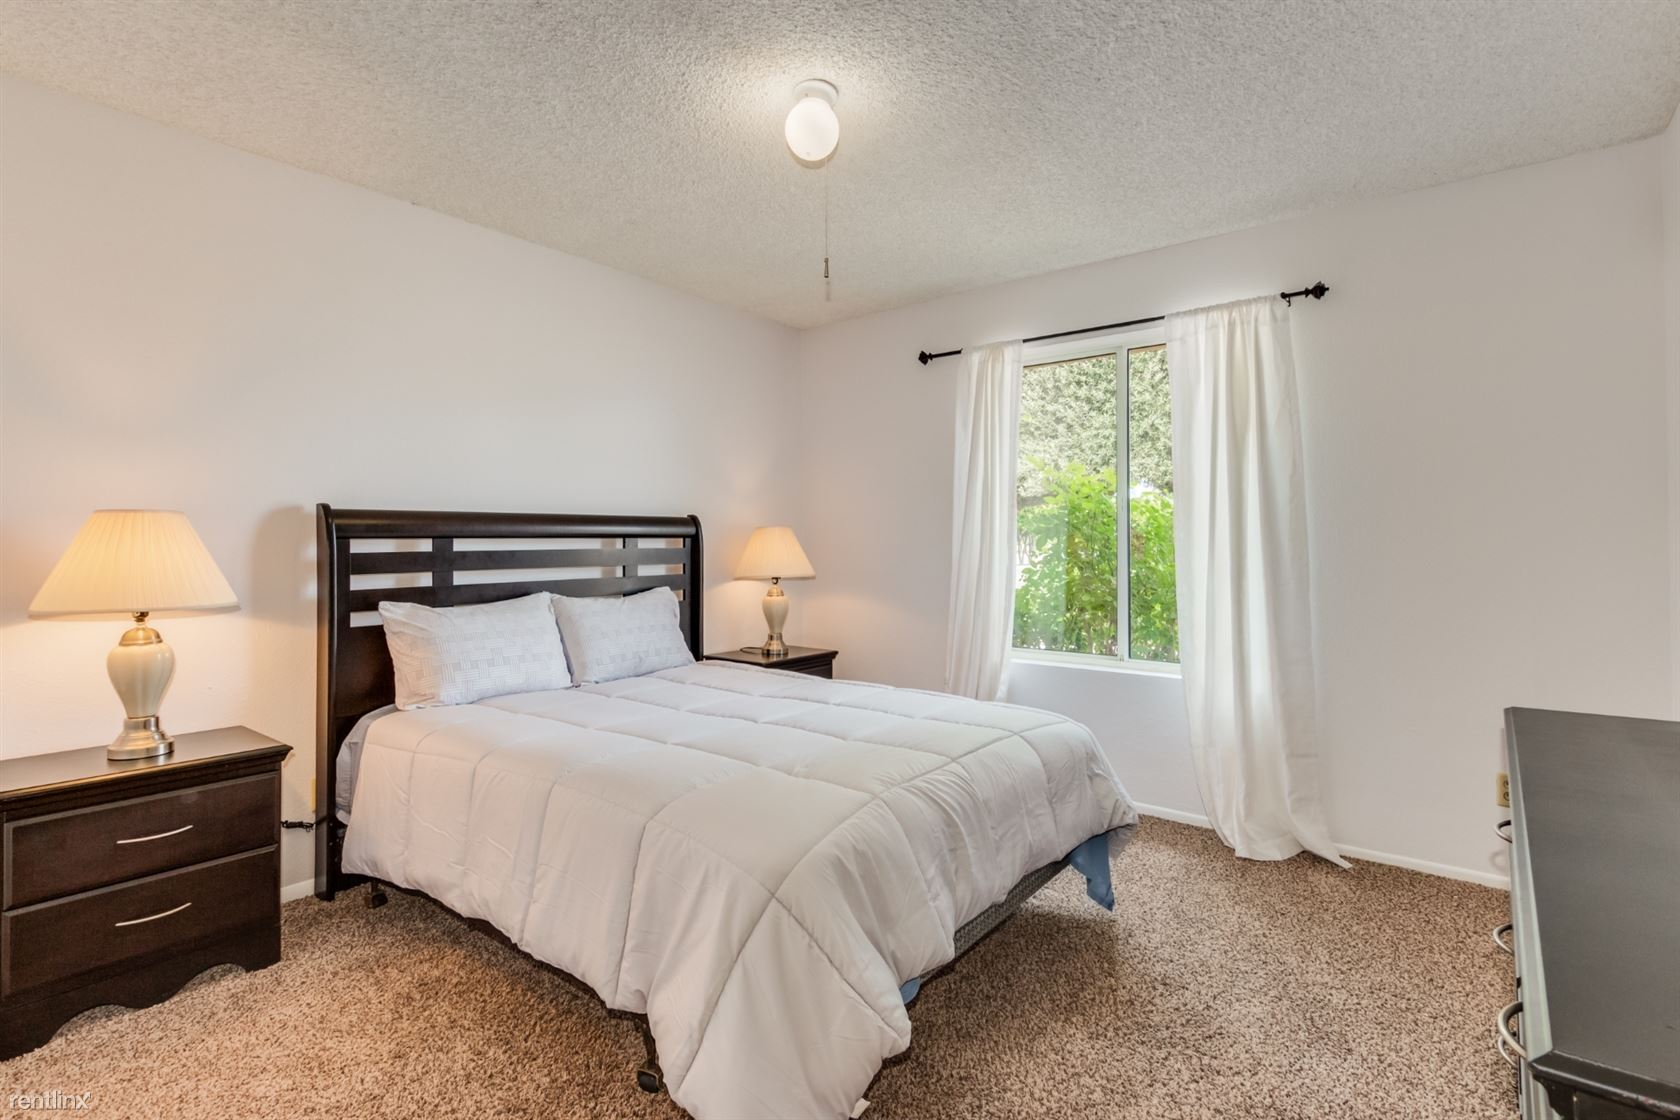 House for Rent in Tempe